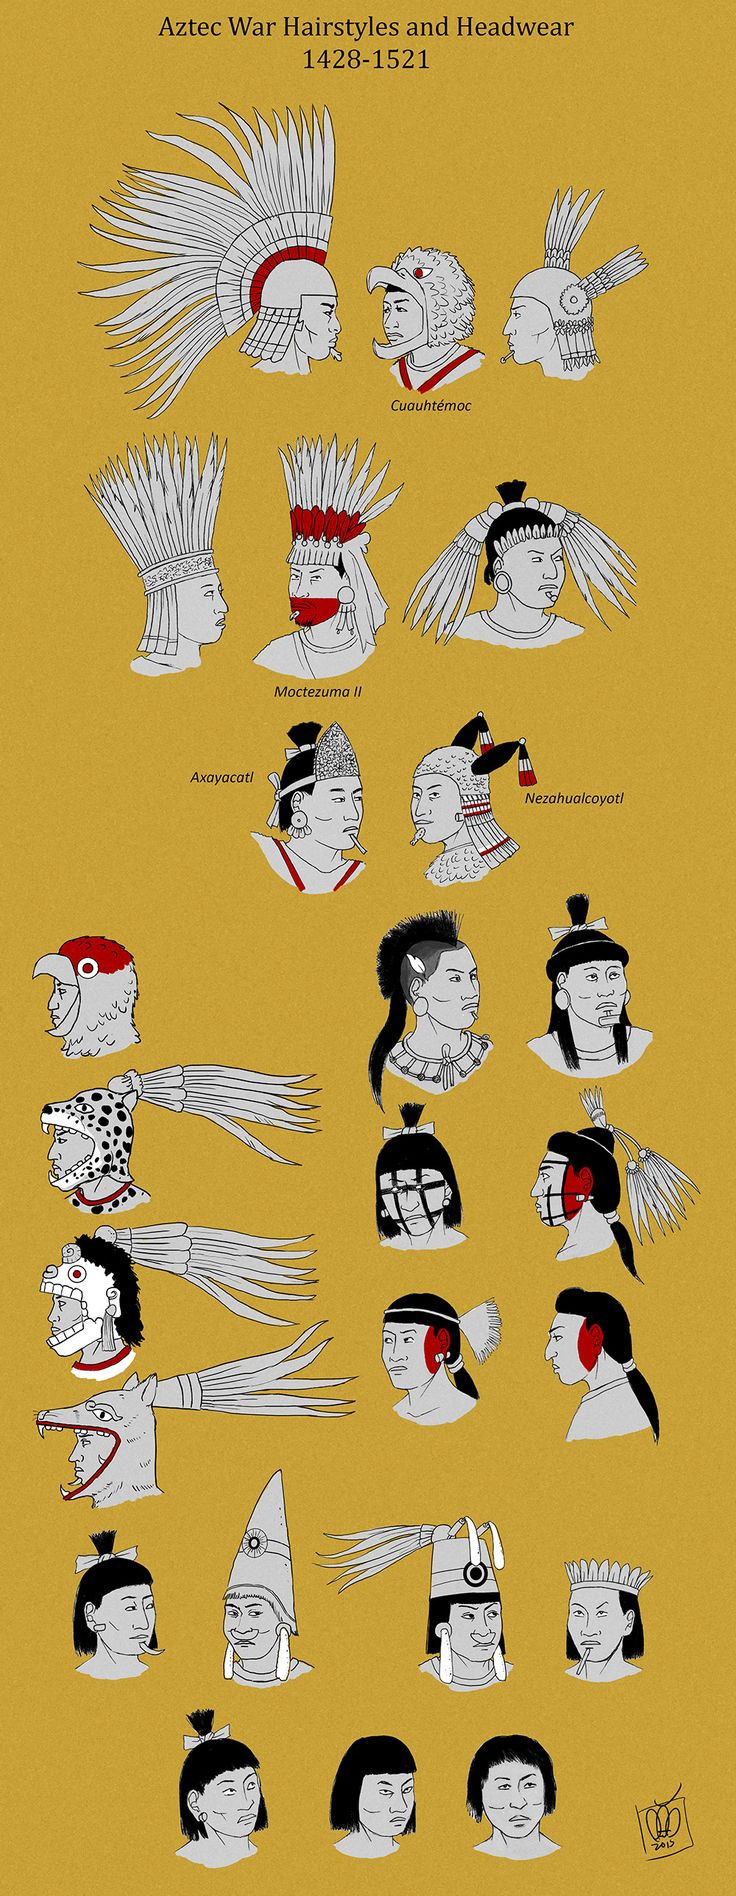 Aztec Warrior Hairstyles by Kamazotz.deviantart.com on @DeviantArt